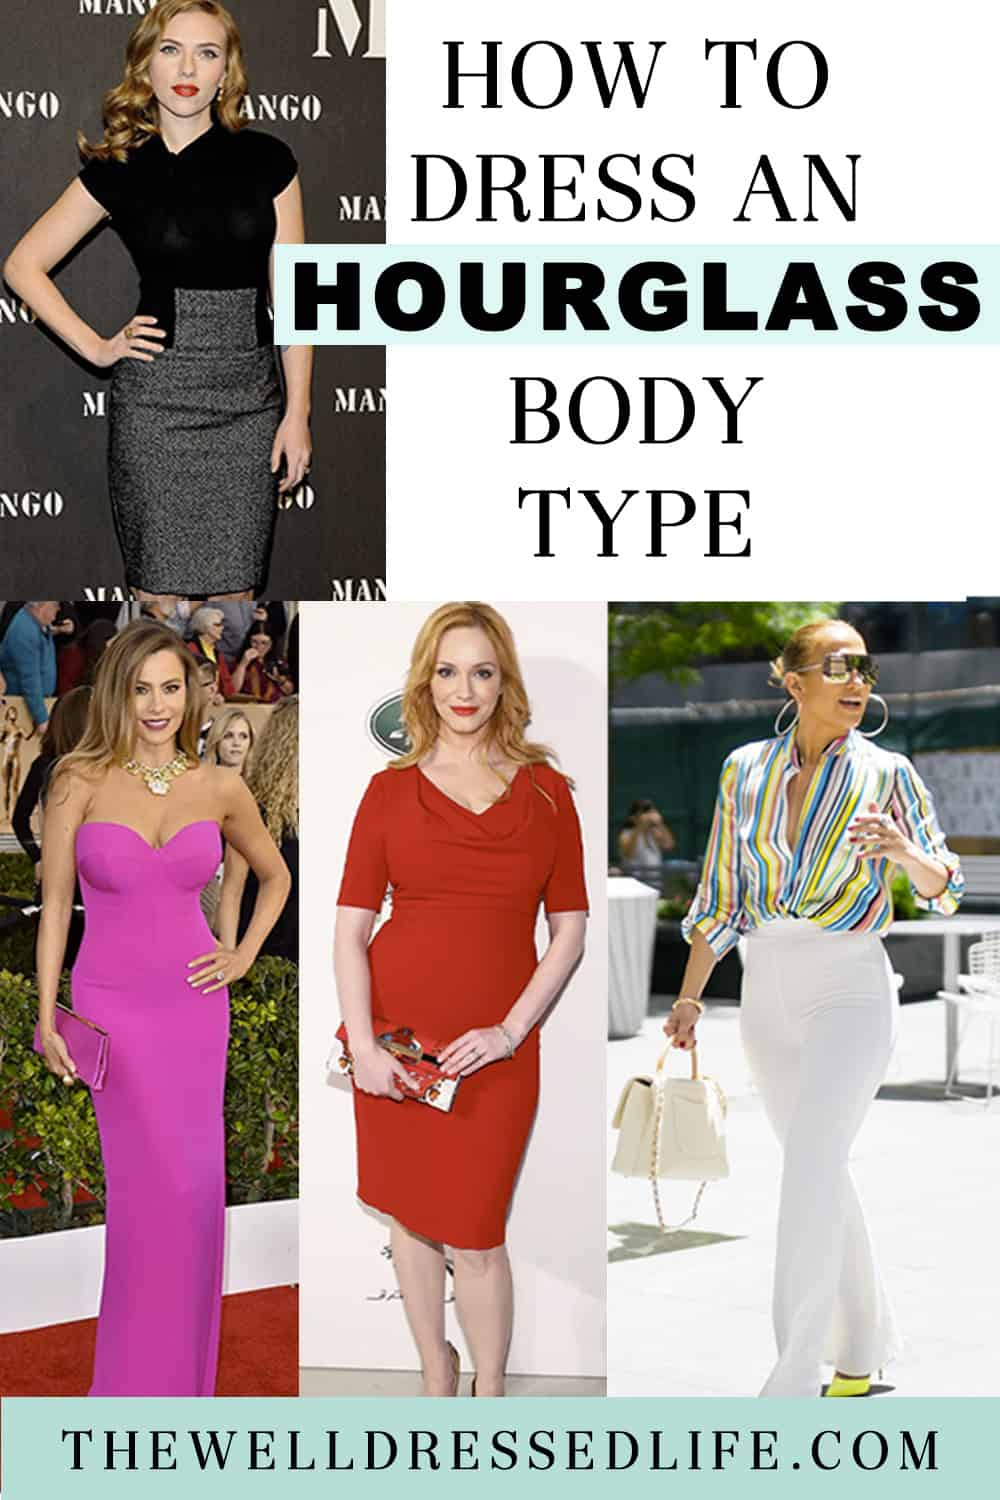 How to Dress an Hourglass Body Type